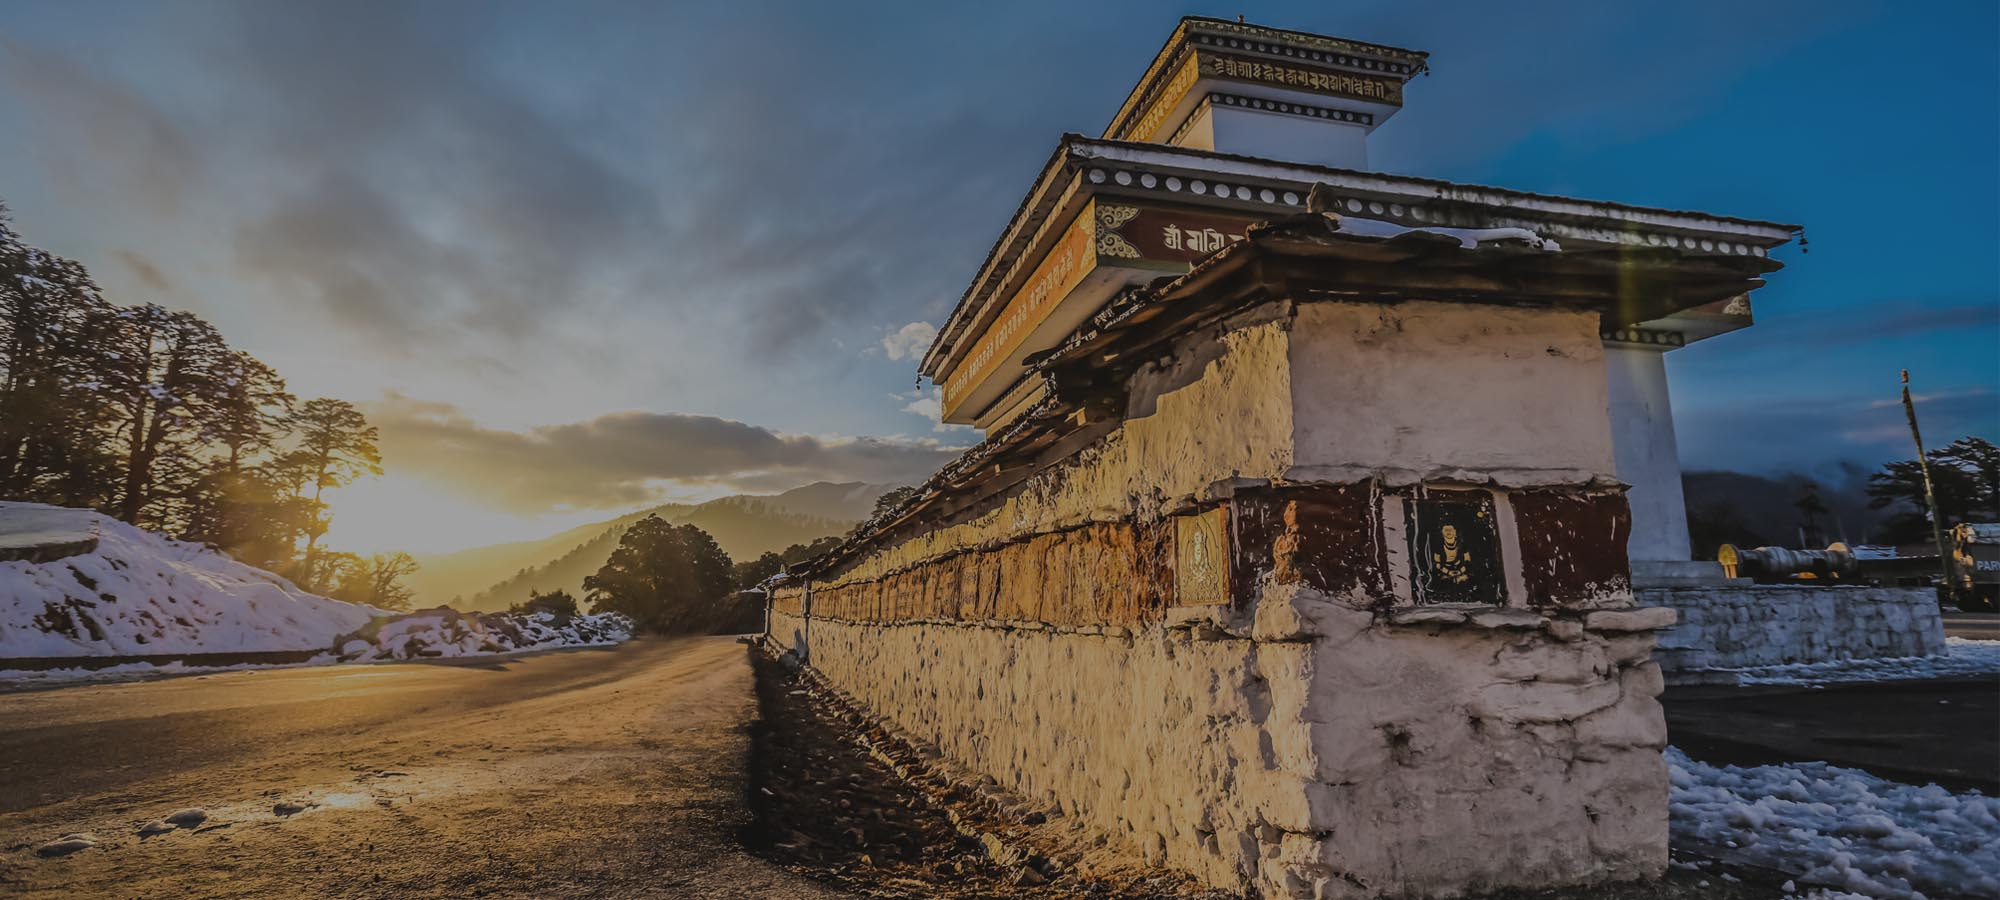 DISCOVER THE BLISS OF BHUTAN